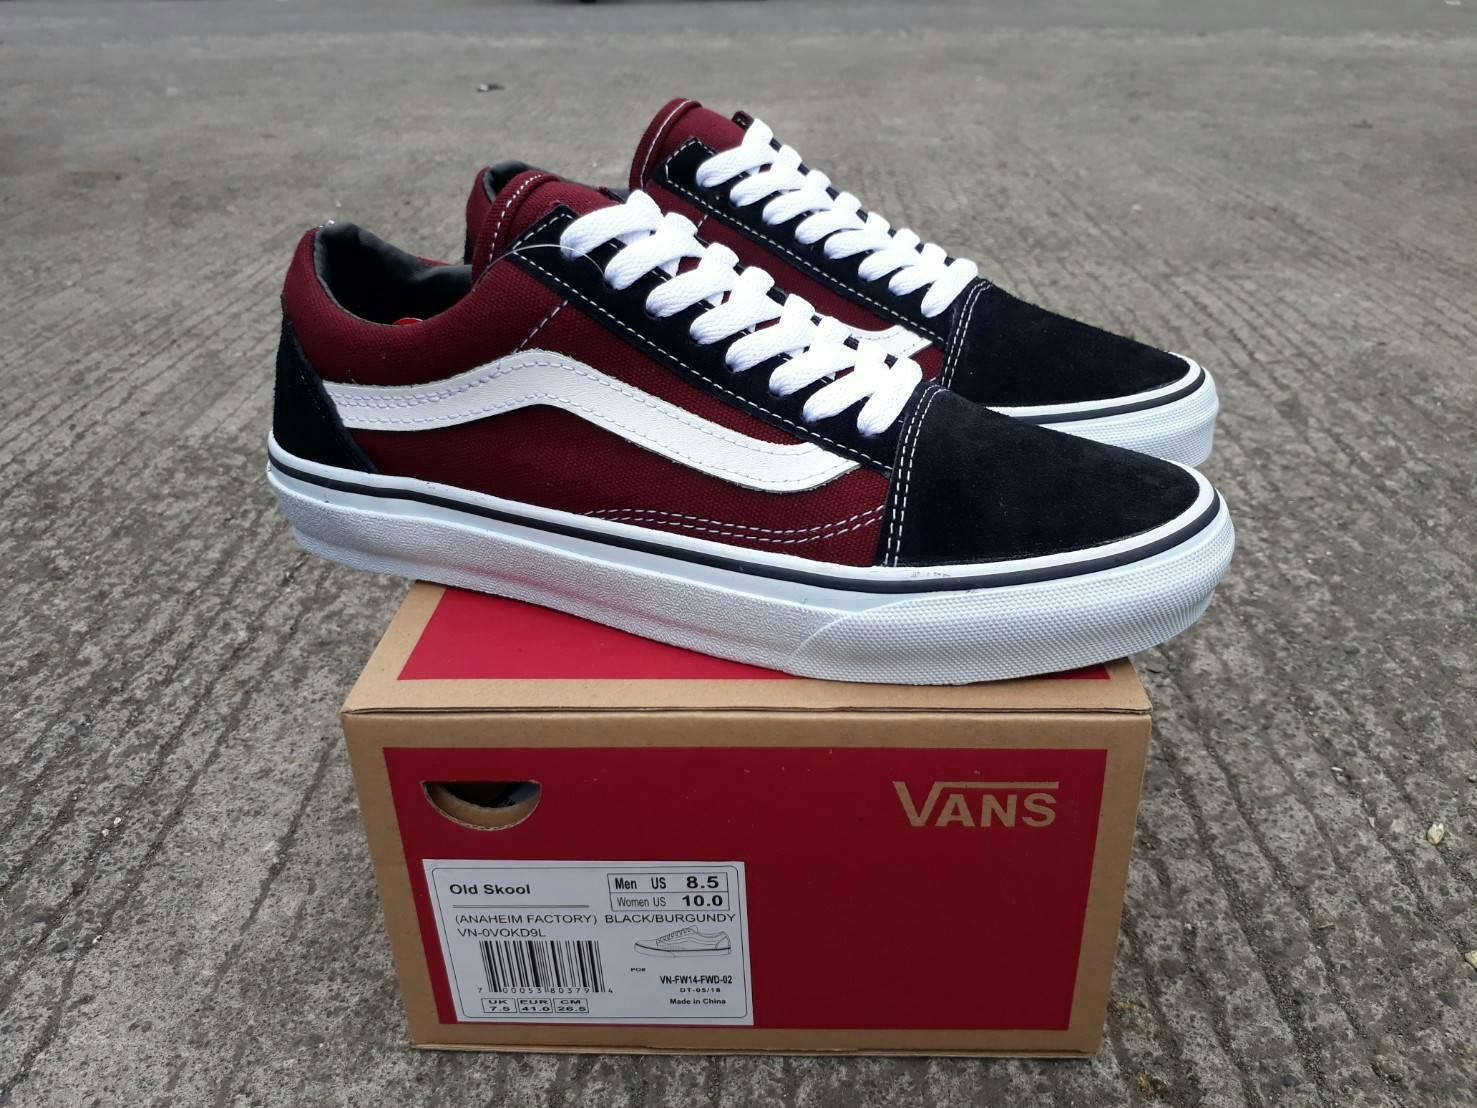 sepatu vans old skool (ANAHEIM FACTORY) black Burgundy waffle DT premium BNIB made in china